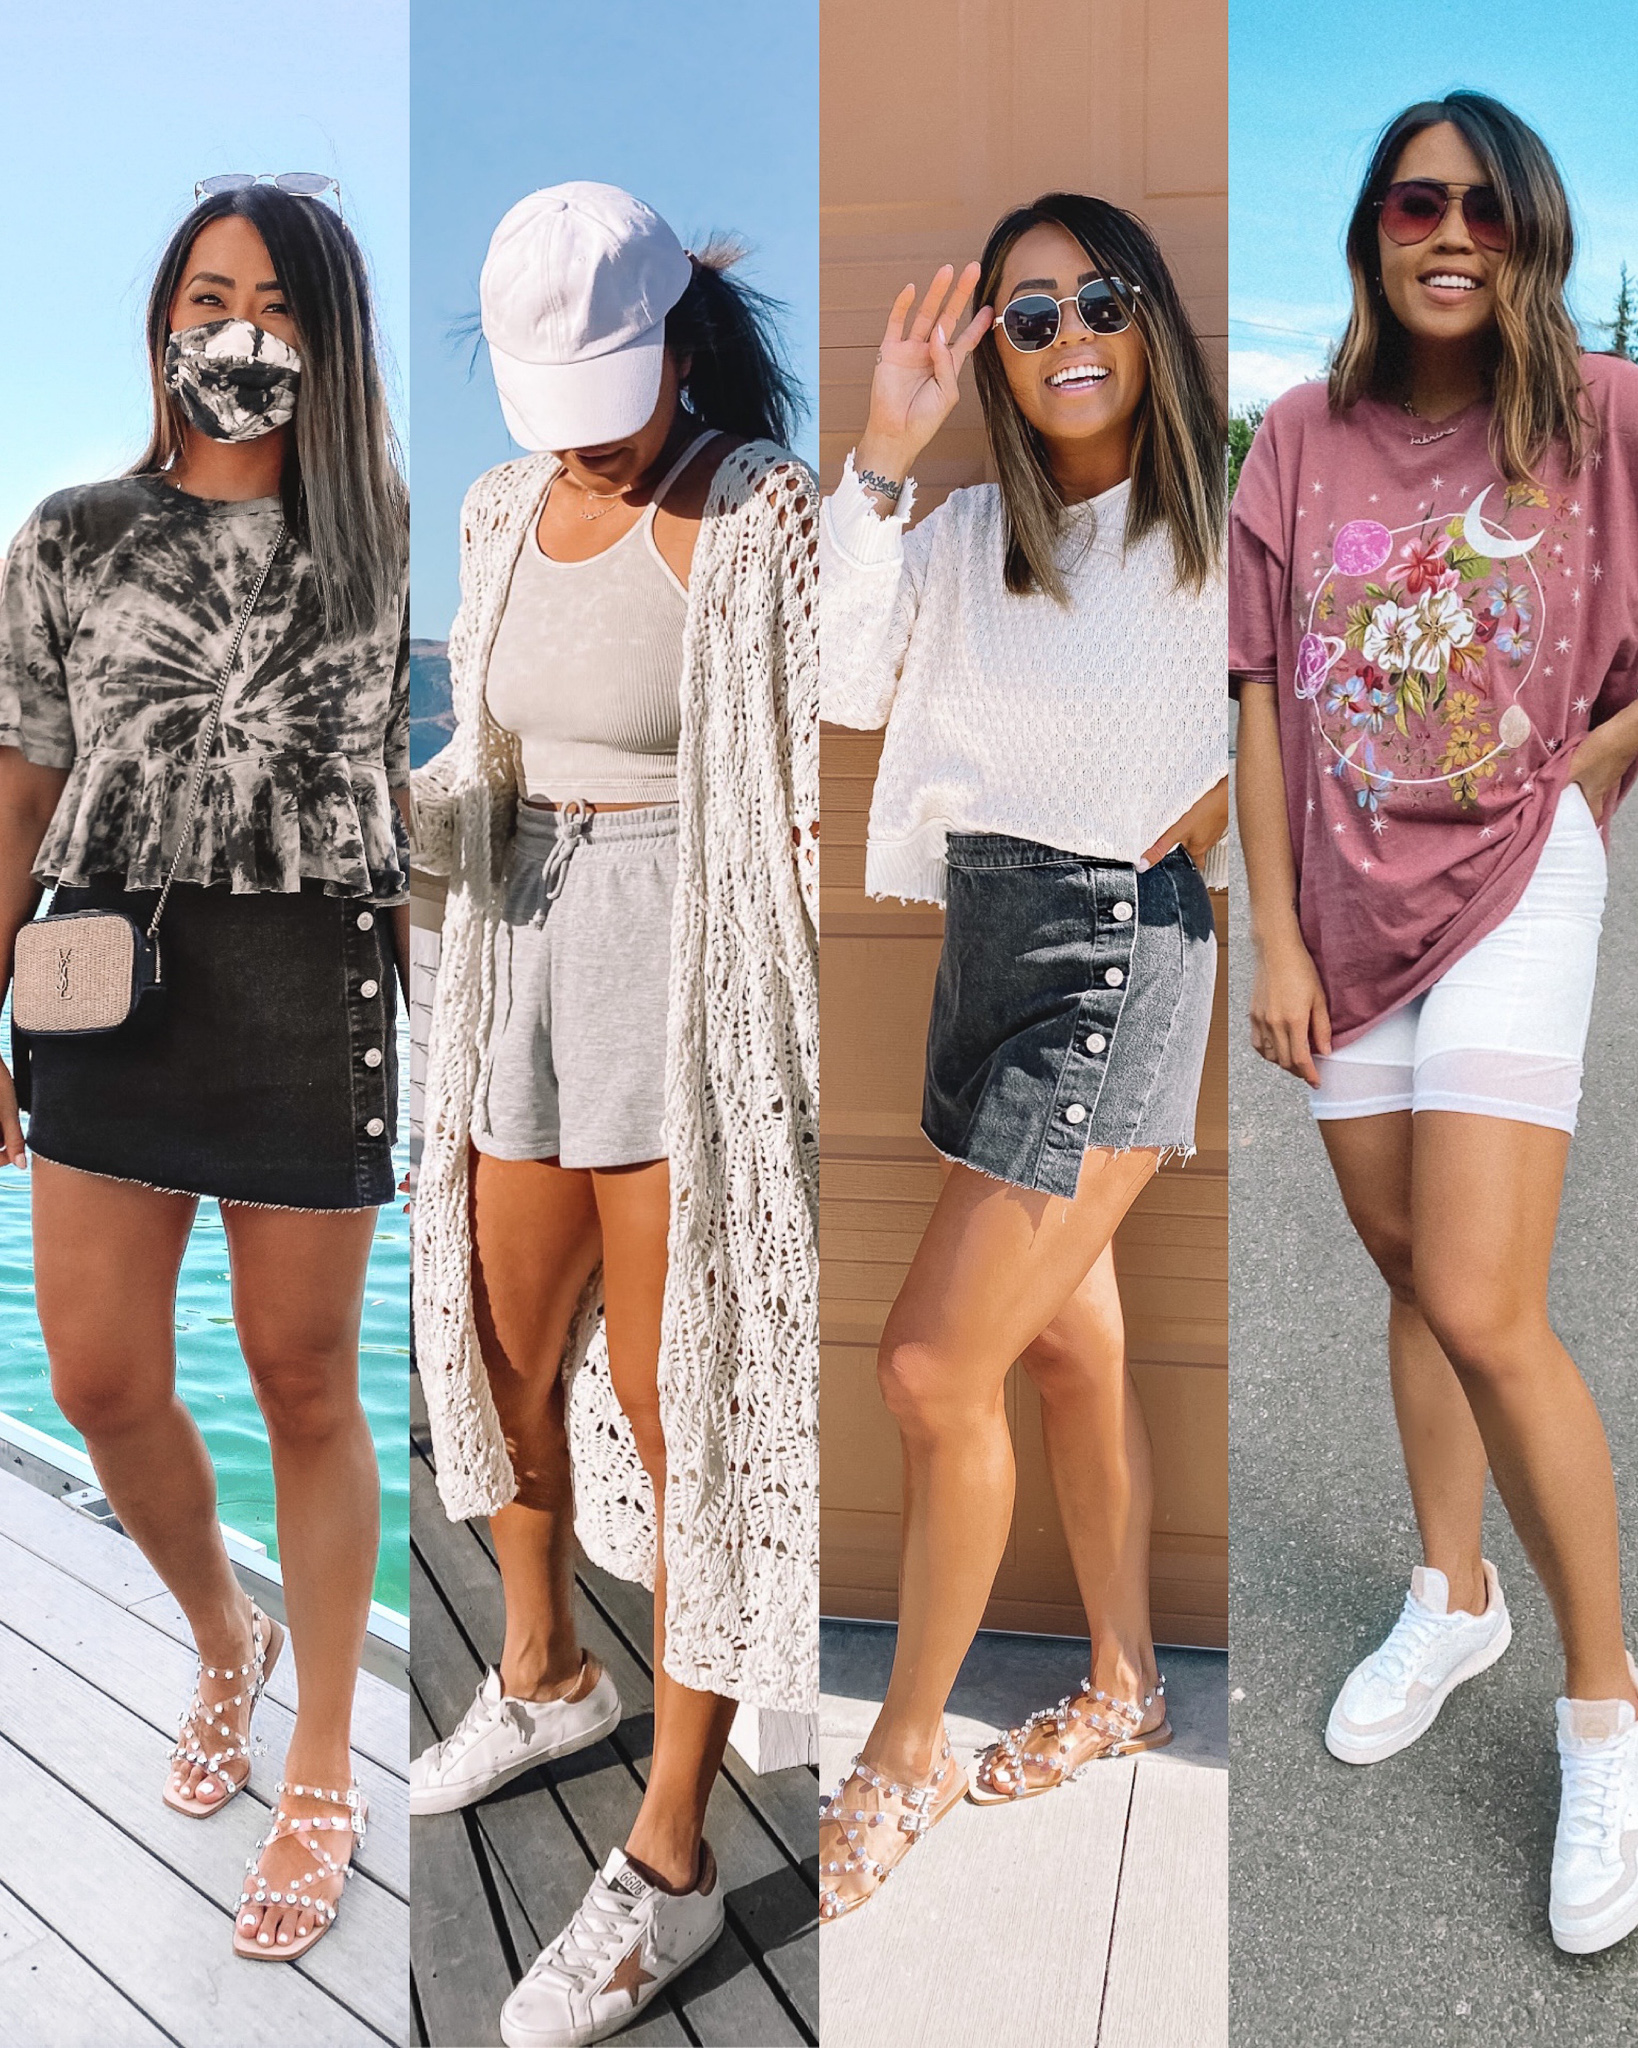 Urban Outfit Ideas : urban, outfit, ideas, Summer, Outfits, Loving, Lately, Urban, Outfitters, Promo